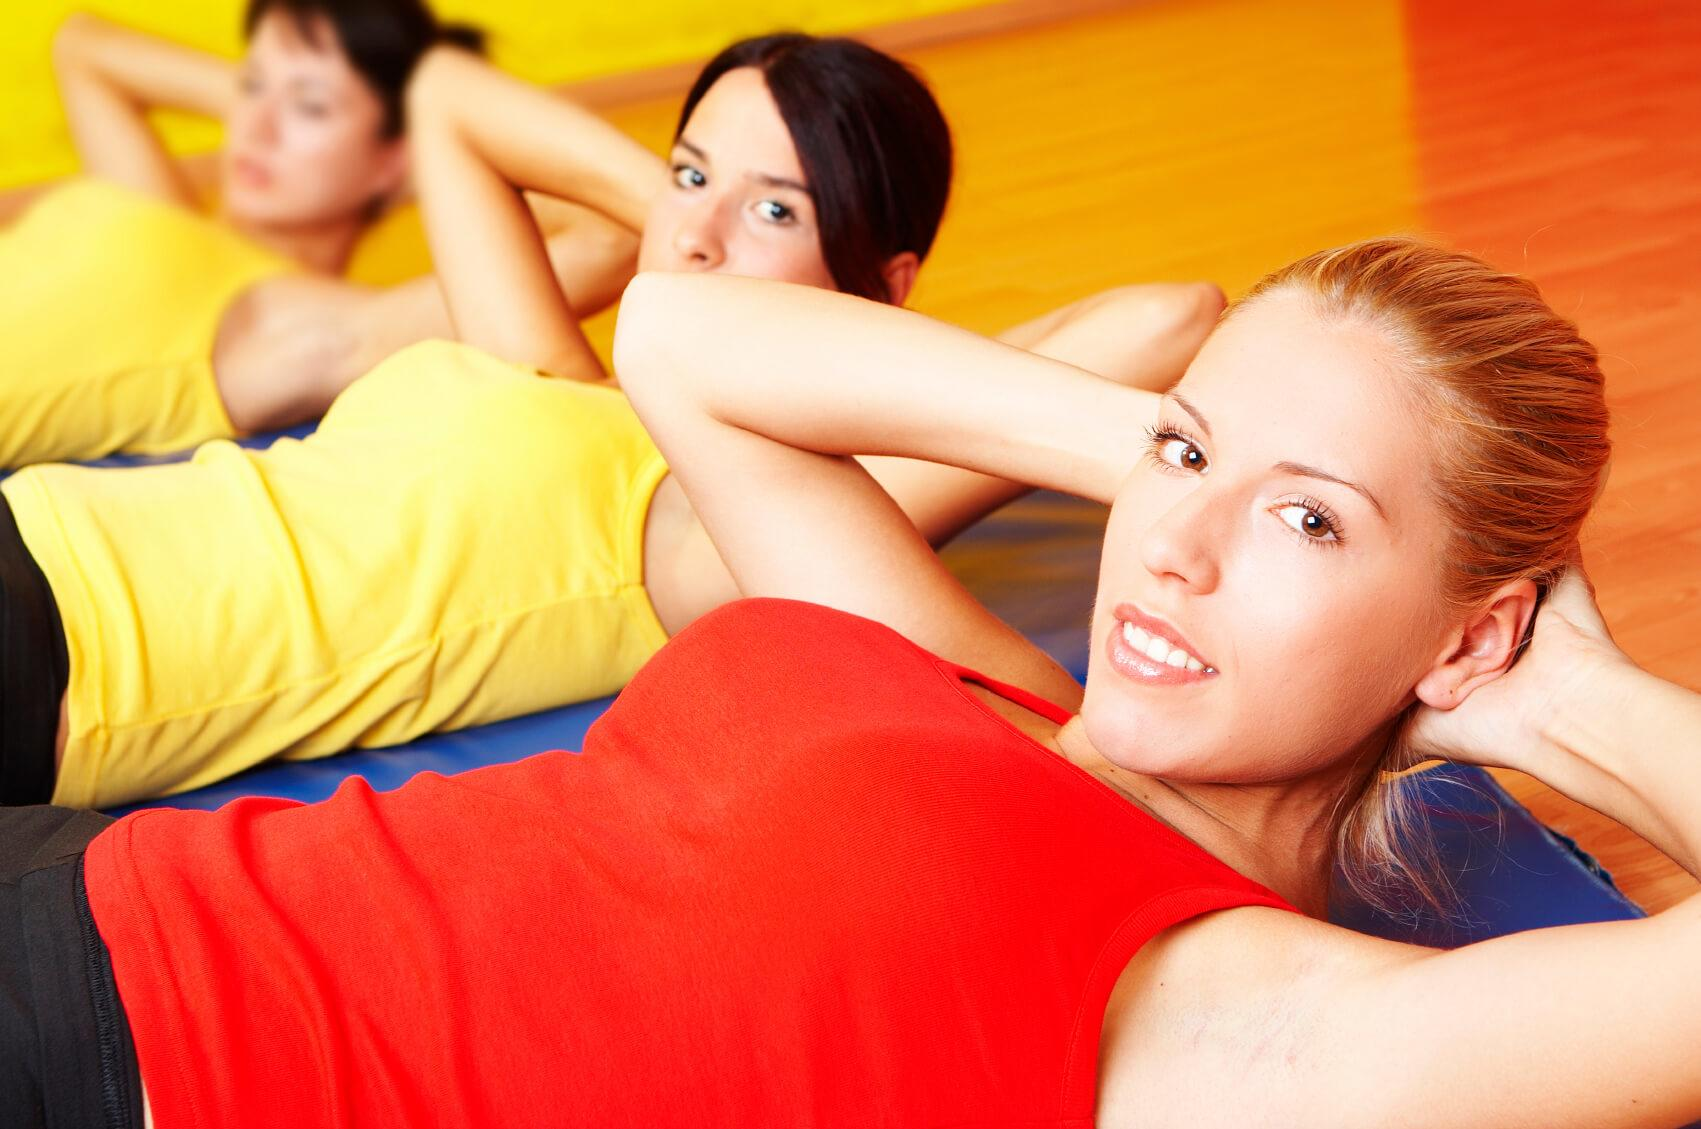 Group of young attractive girls exercise fitnes at club